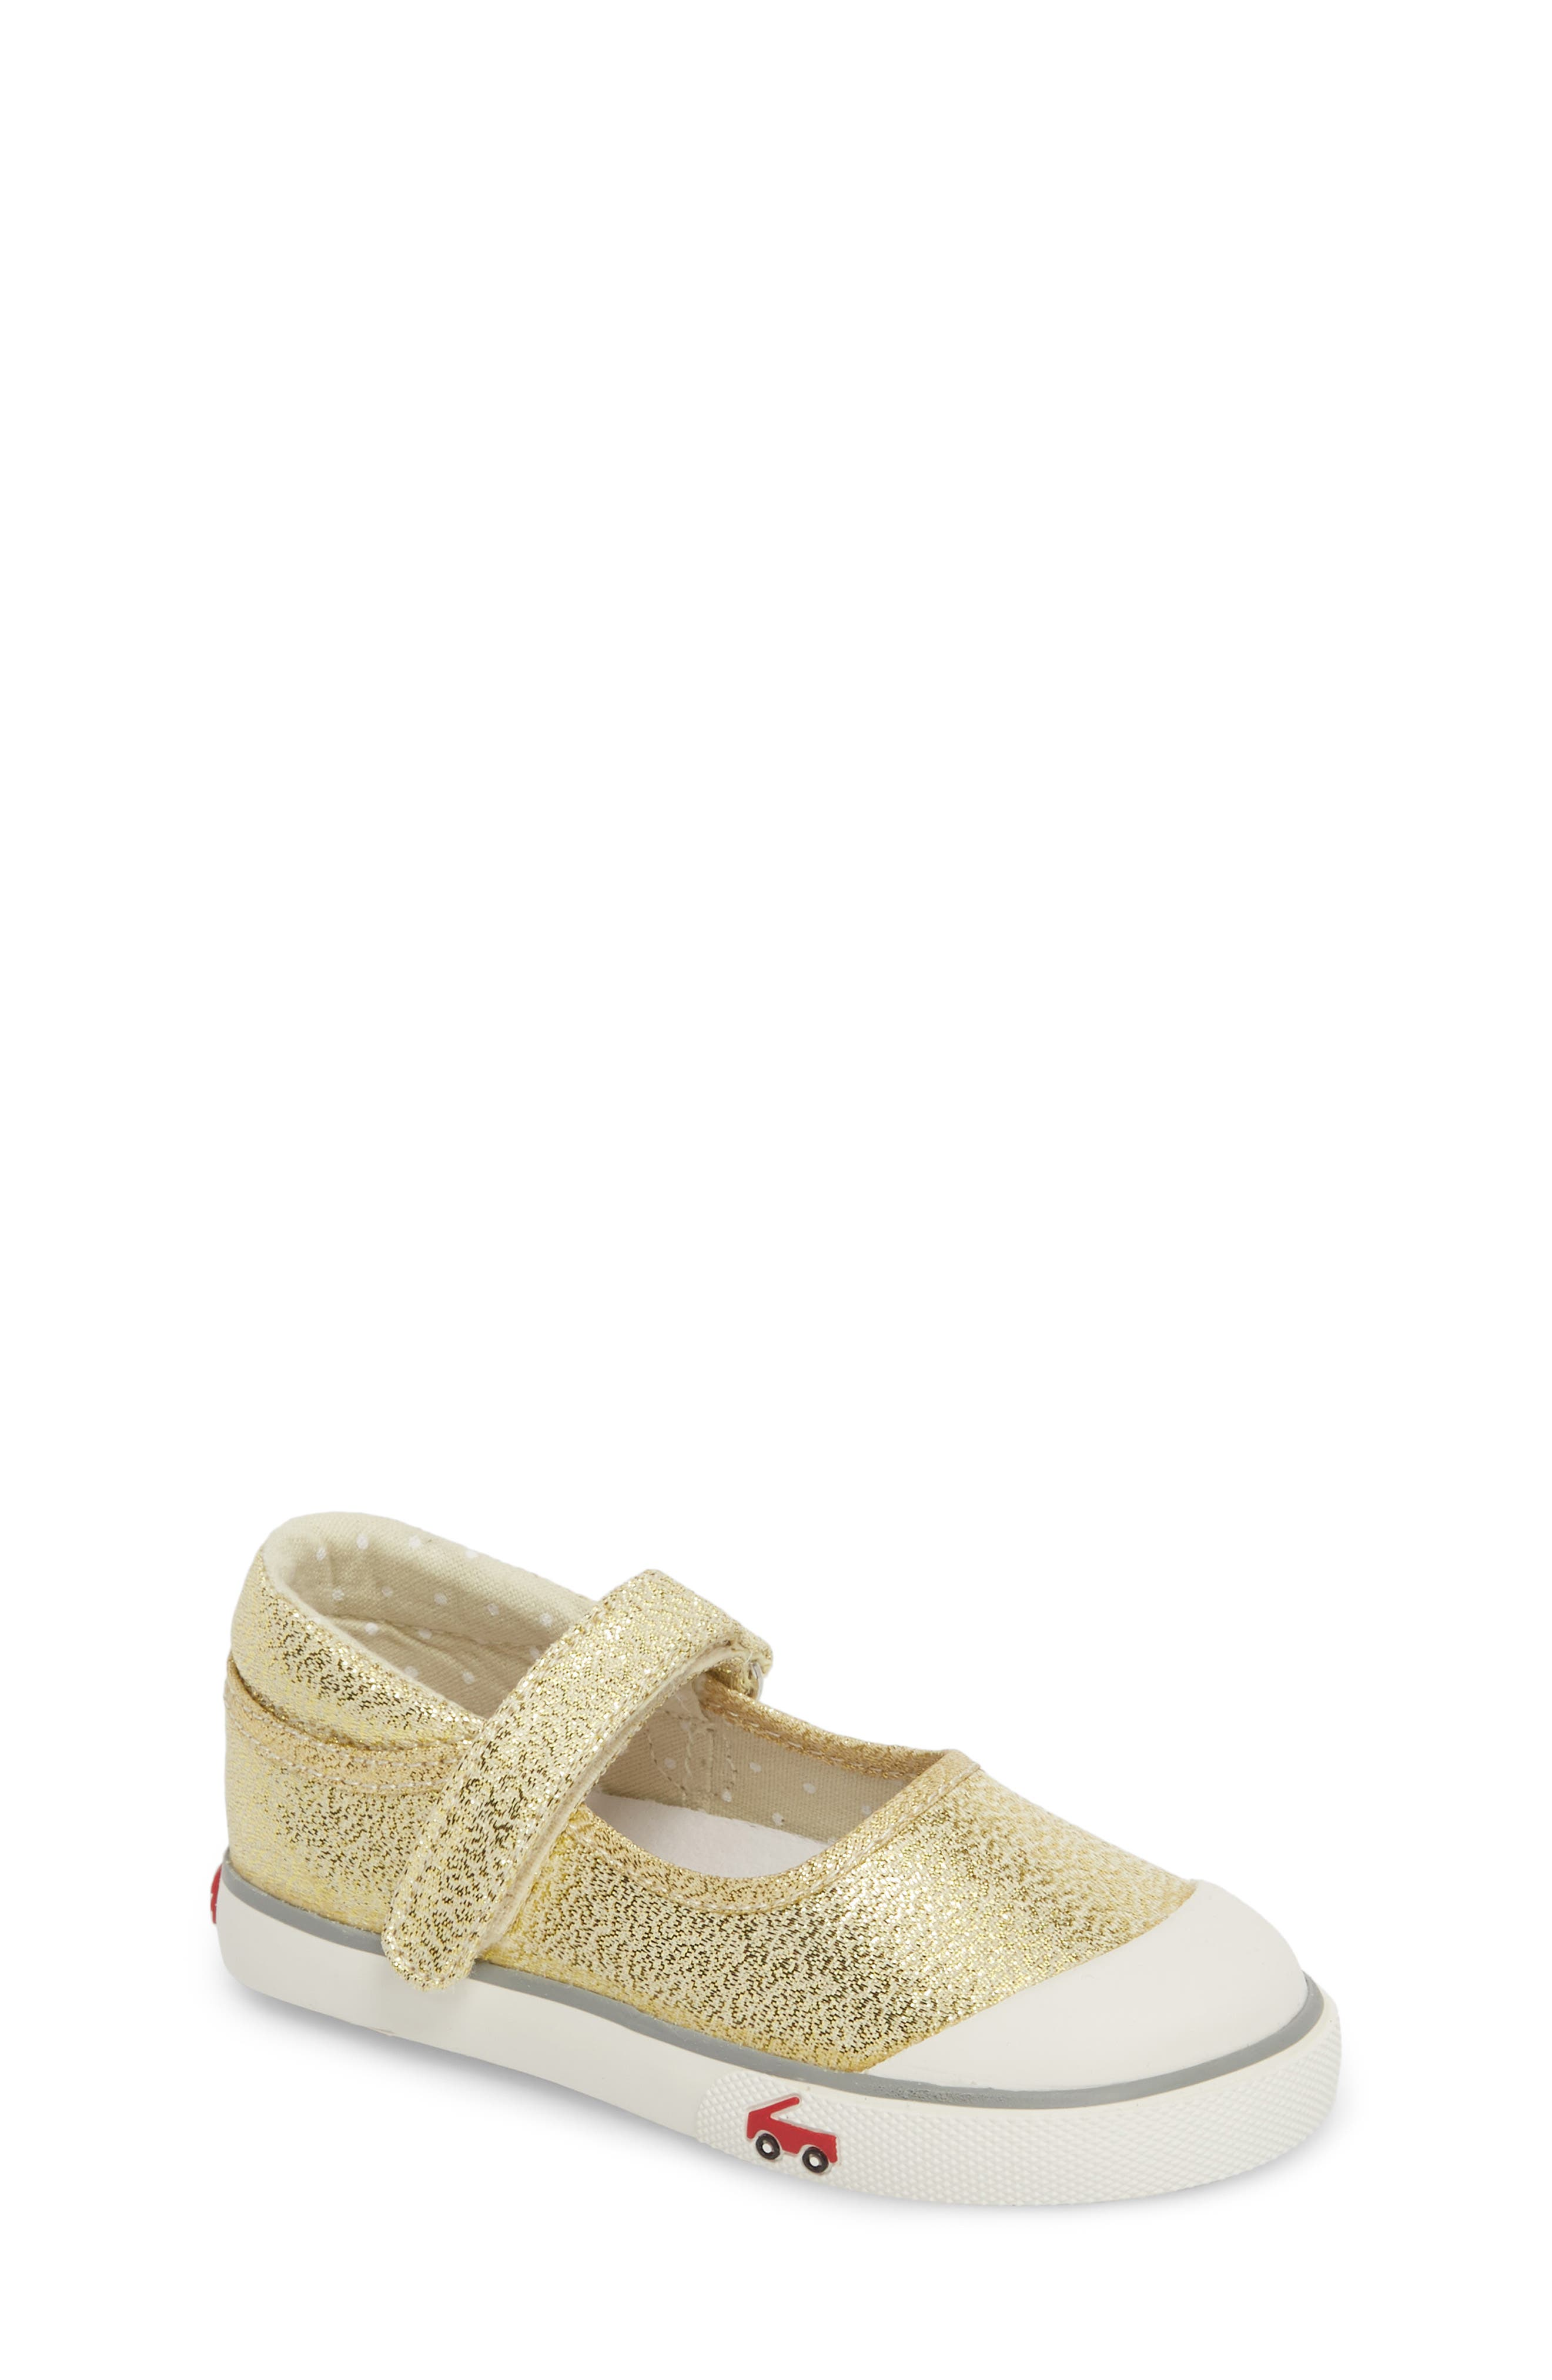 'Marie' Mary Jane Sneaker,                             Main thumbnail 1, color,                             METALLIC GOLD